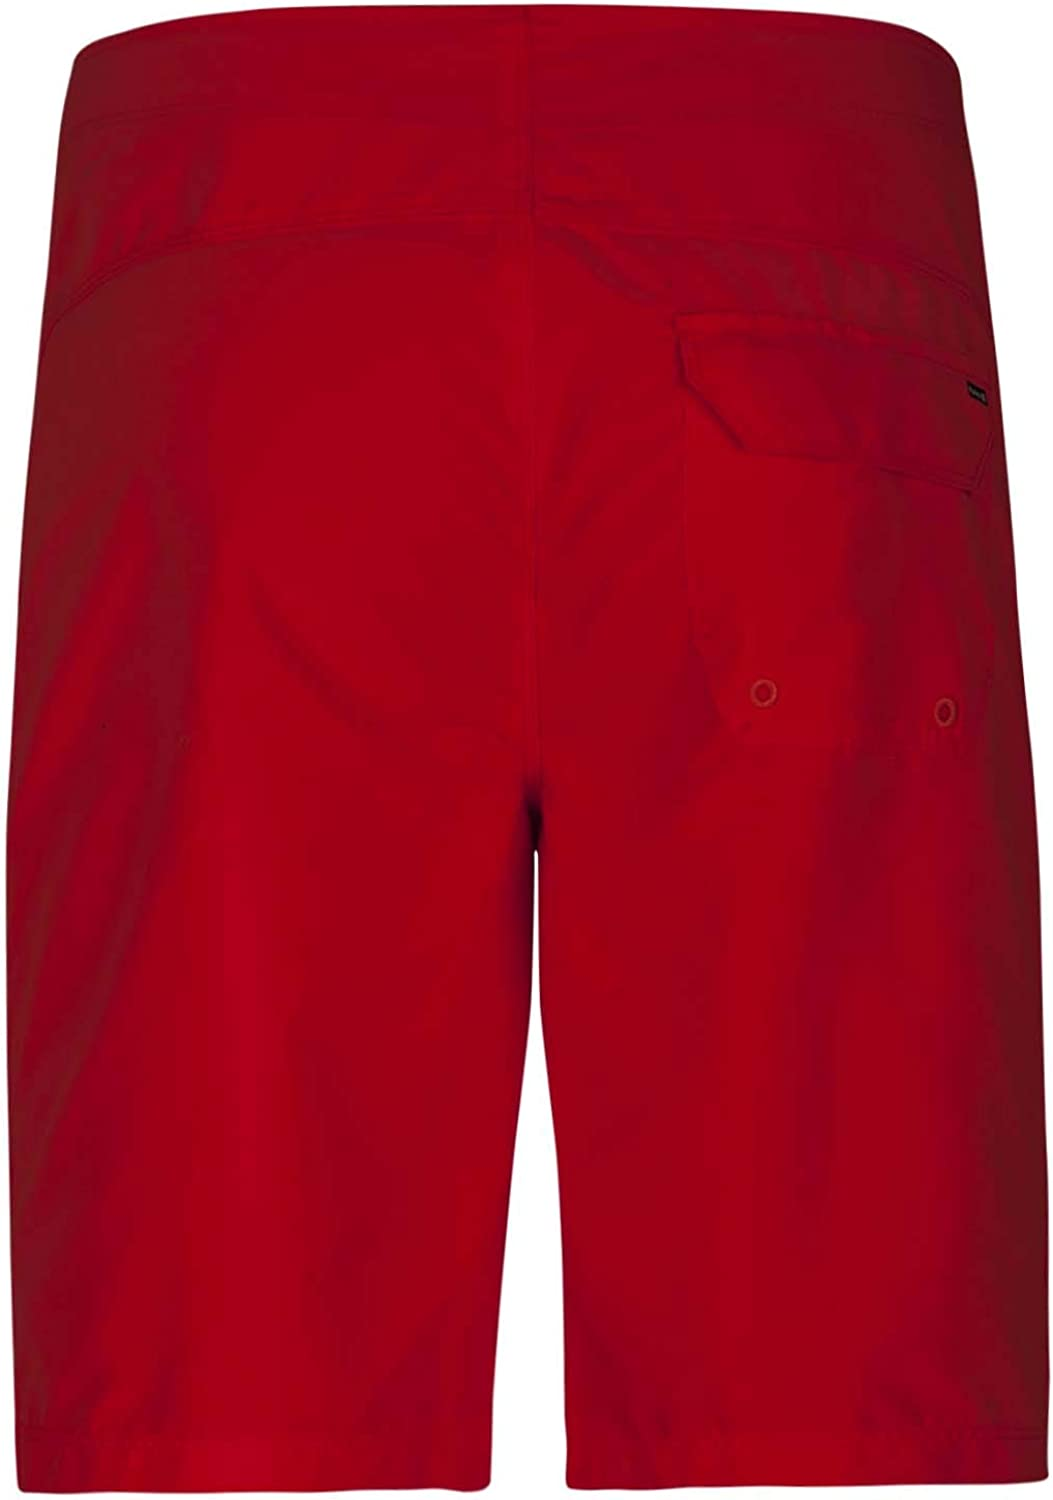 Hurley Mens One and Only Board Shorts